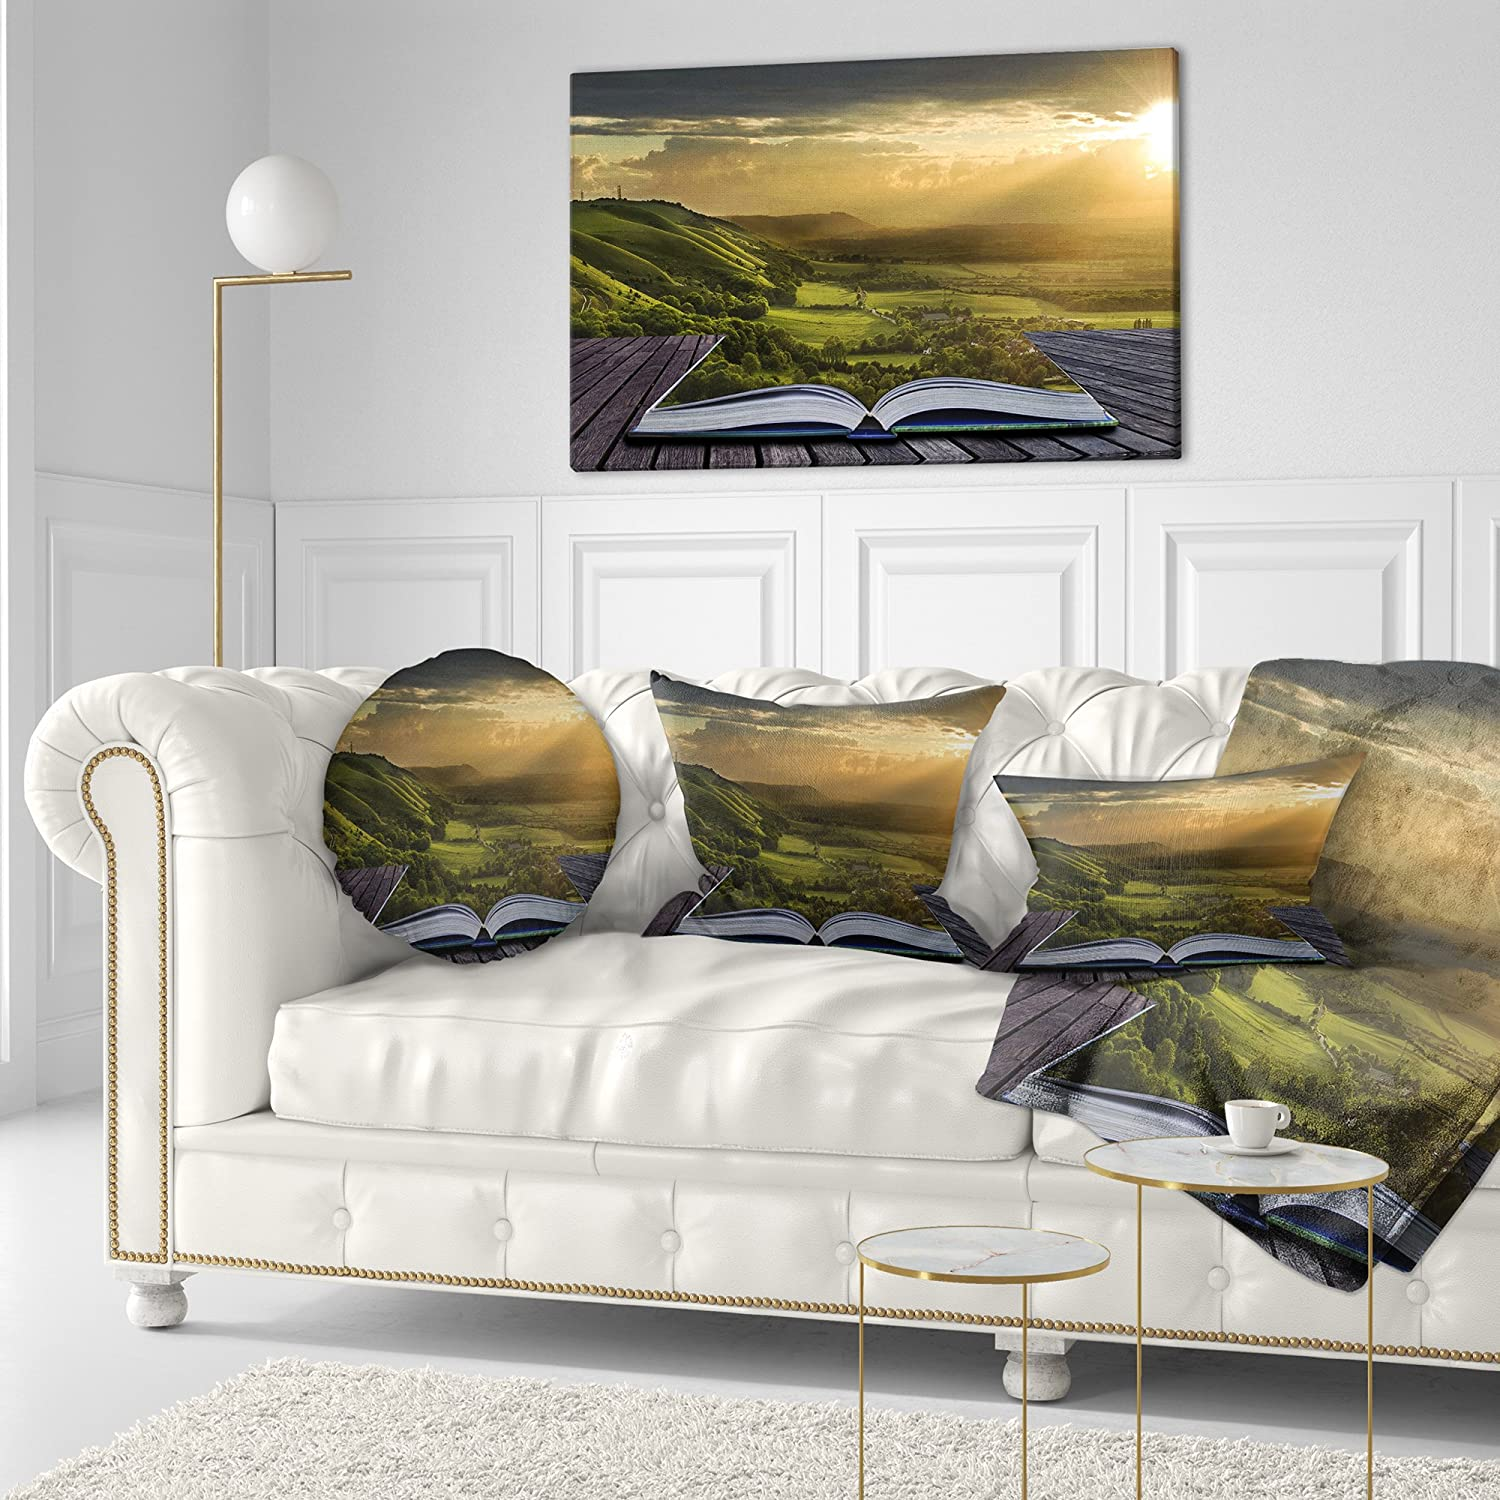 Sofa Throw Pillow 12 x 20 Designart CU6826-12-20 Open Book to Green Valley Digital Art Landscape Printed Lumbar Cushion Cover for Living Room